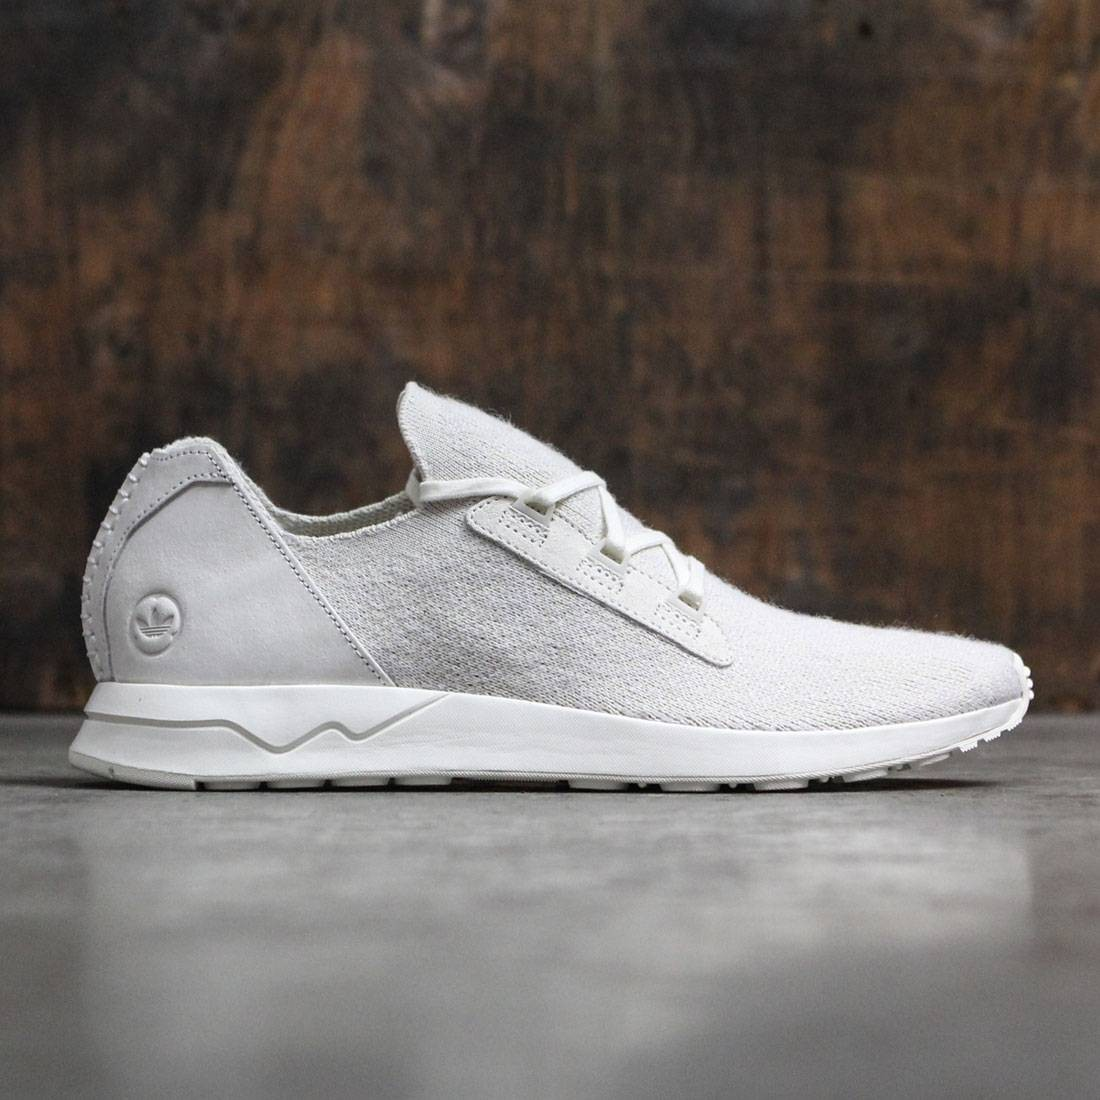 Adidas Consortium x Wings And Horns Men ZX Flux Primeknit (white / off white)